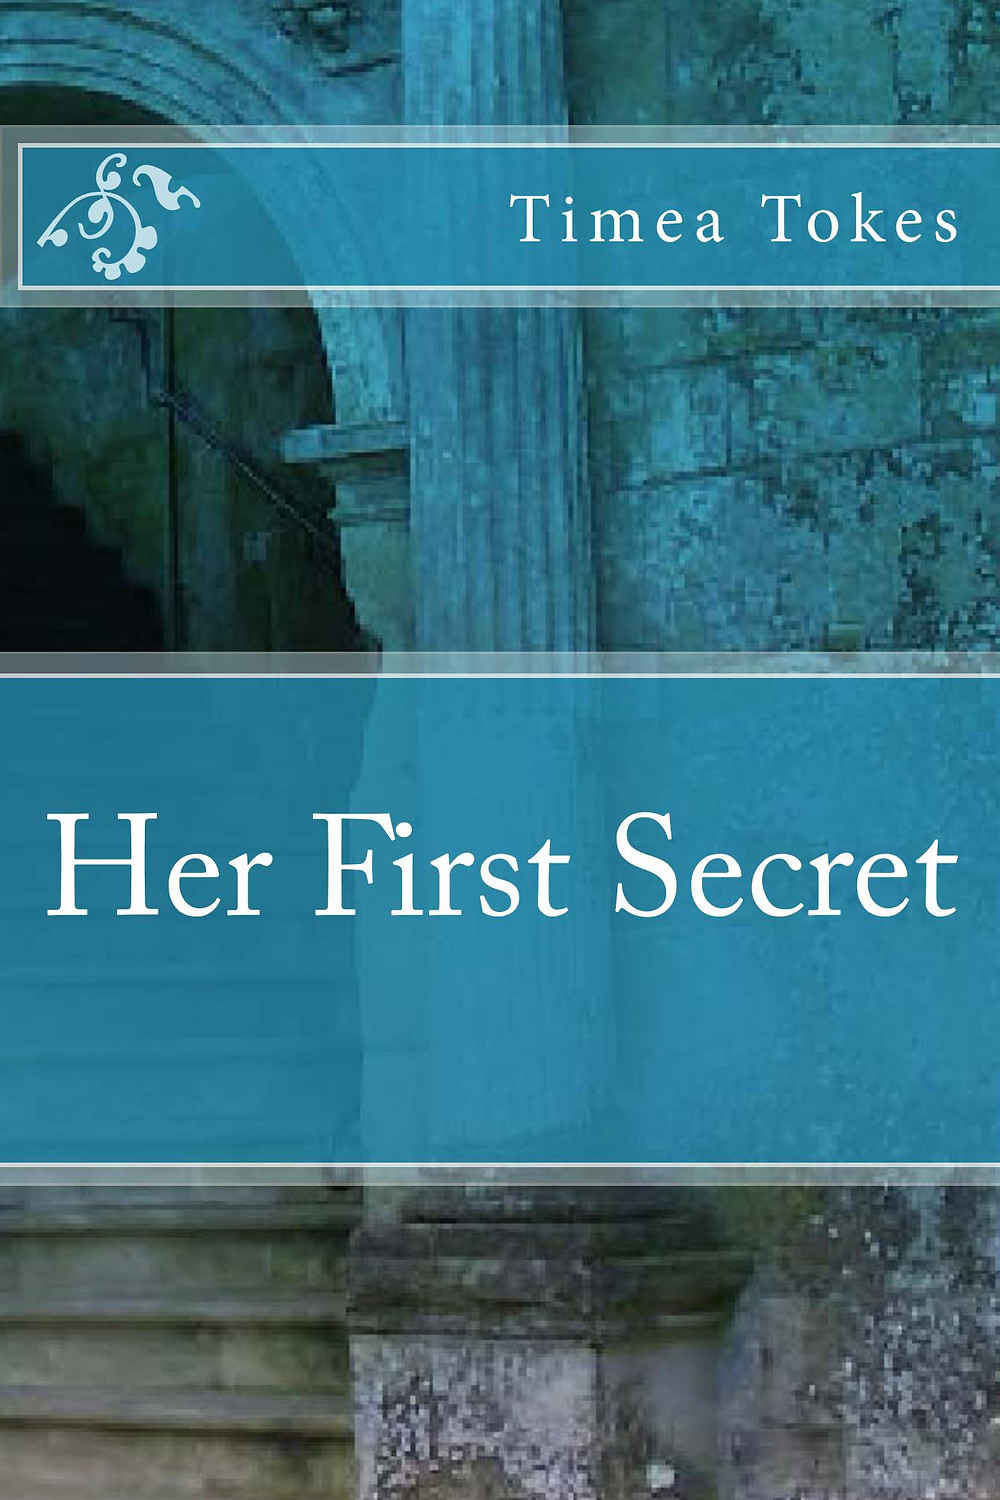 Her First Secret by Timea Tokes